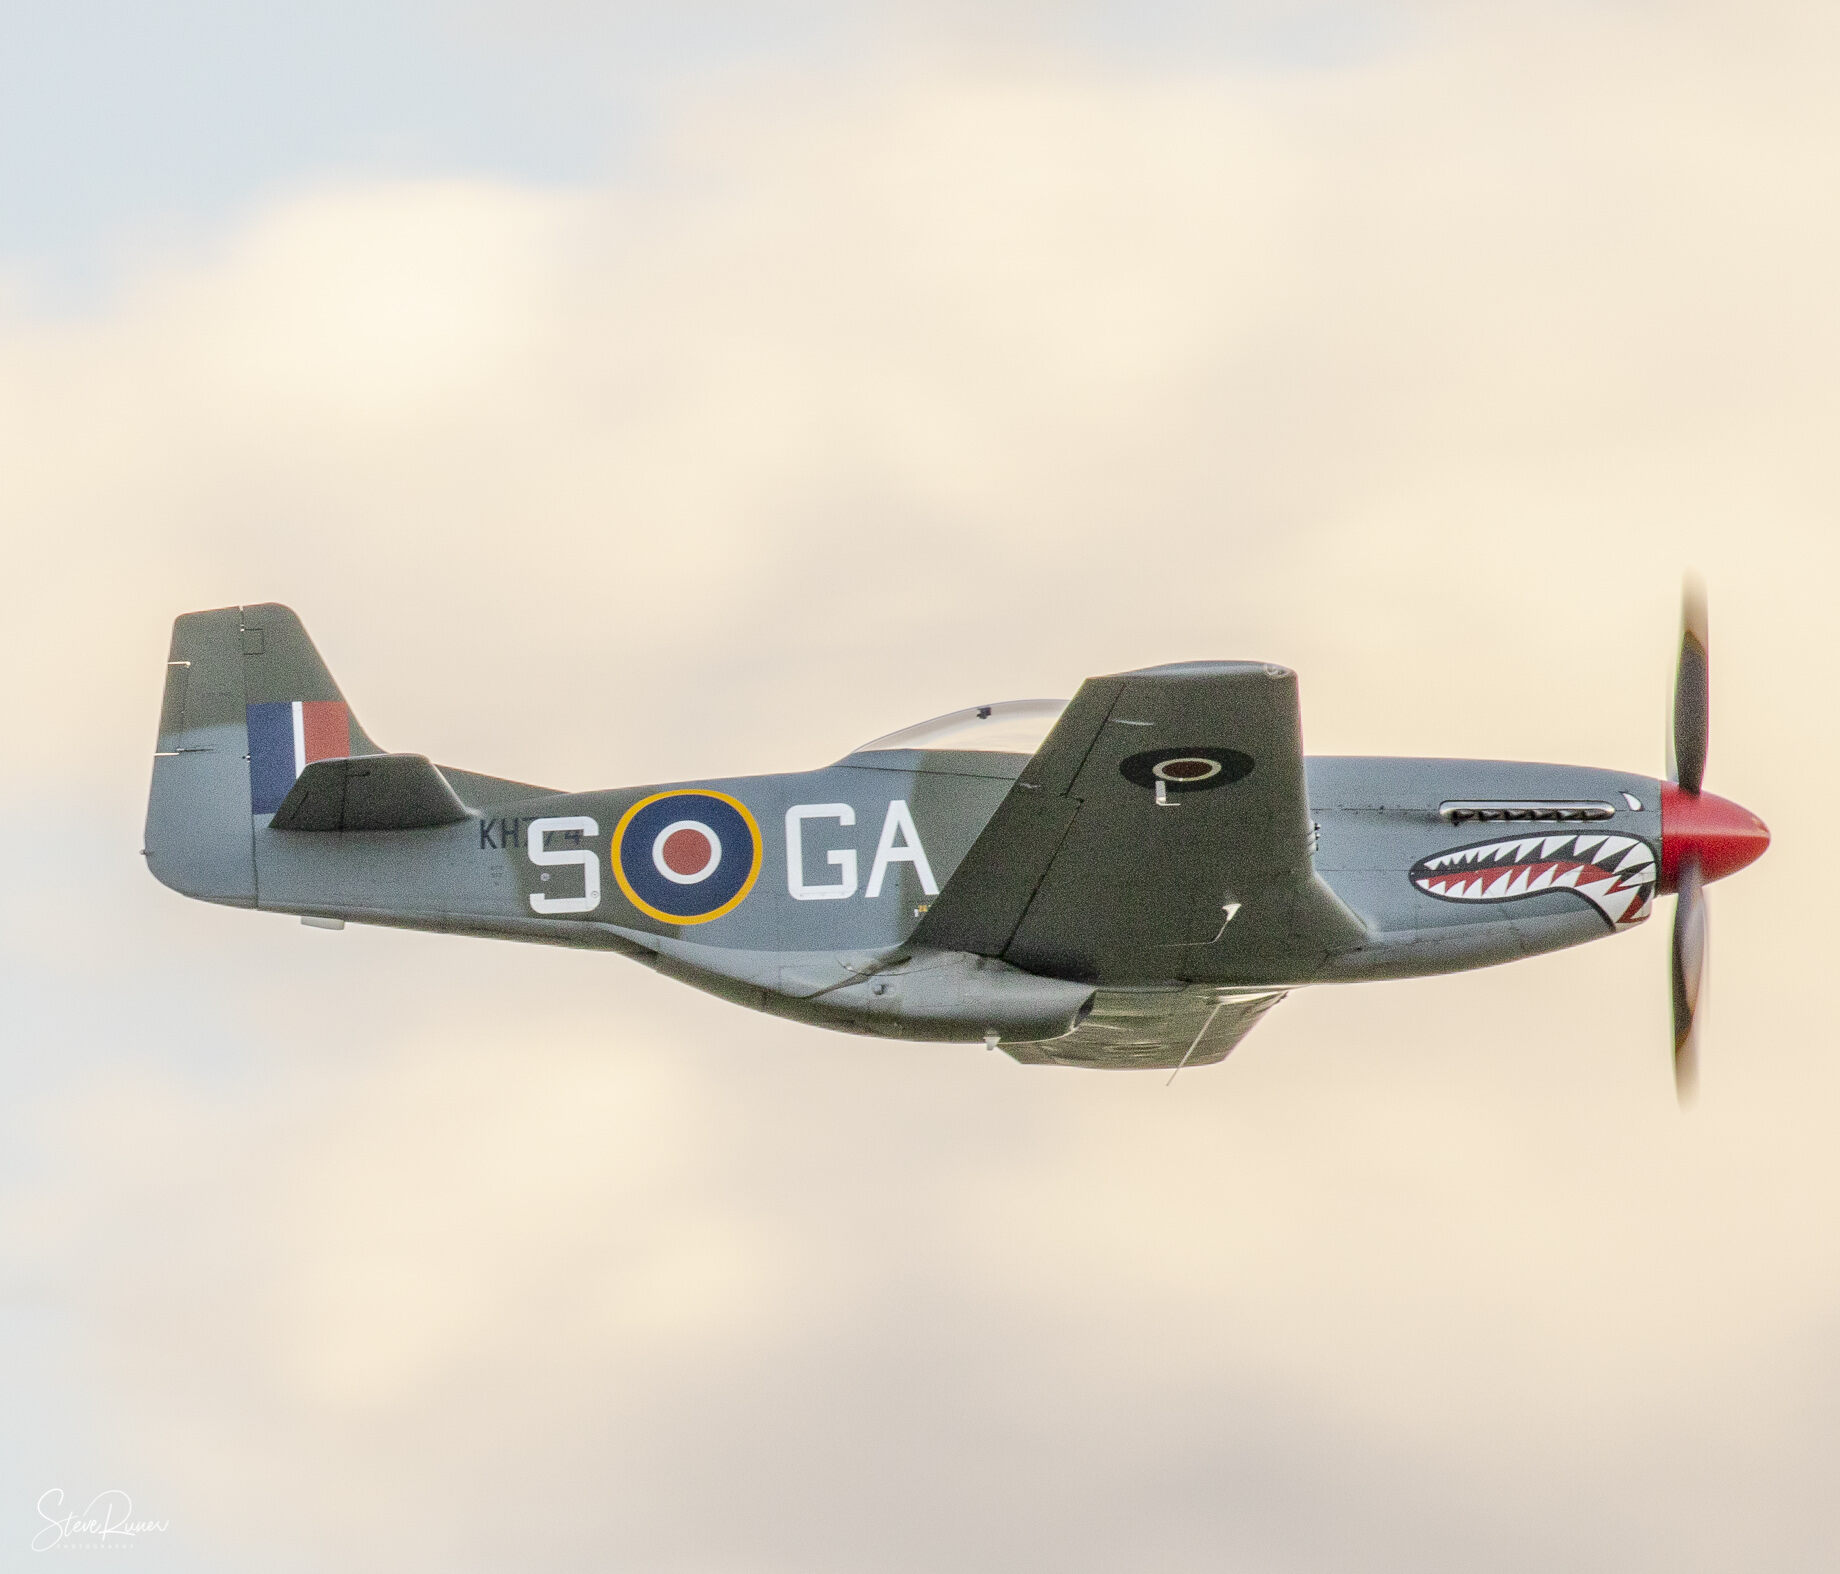 duxford_sunday_23sep18-2644